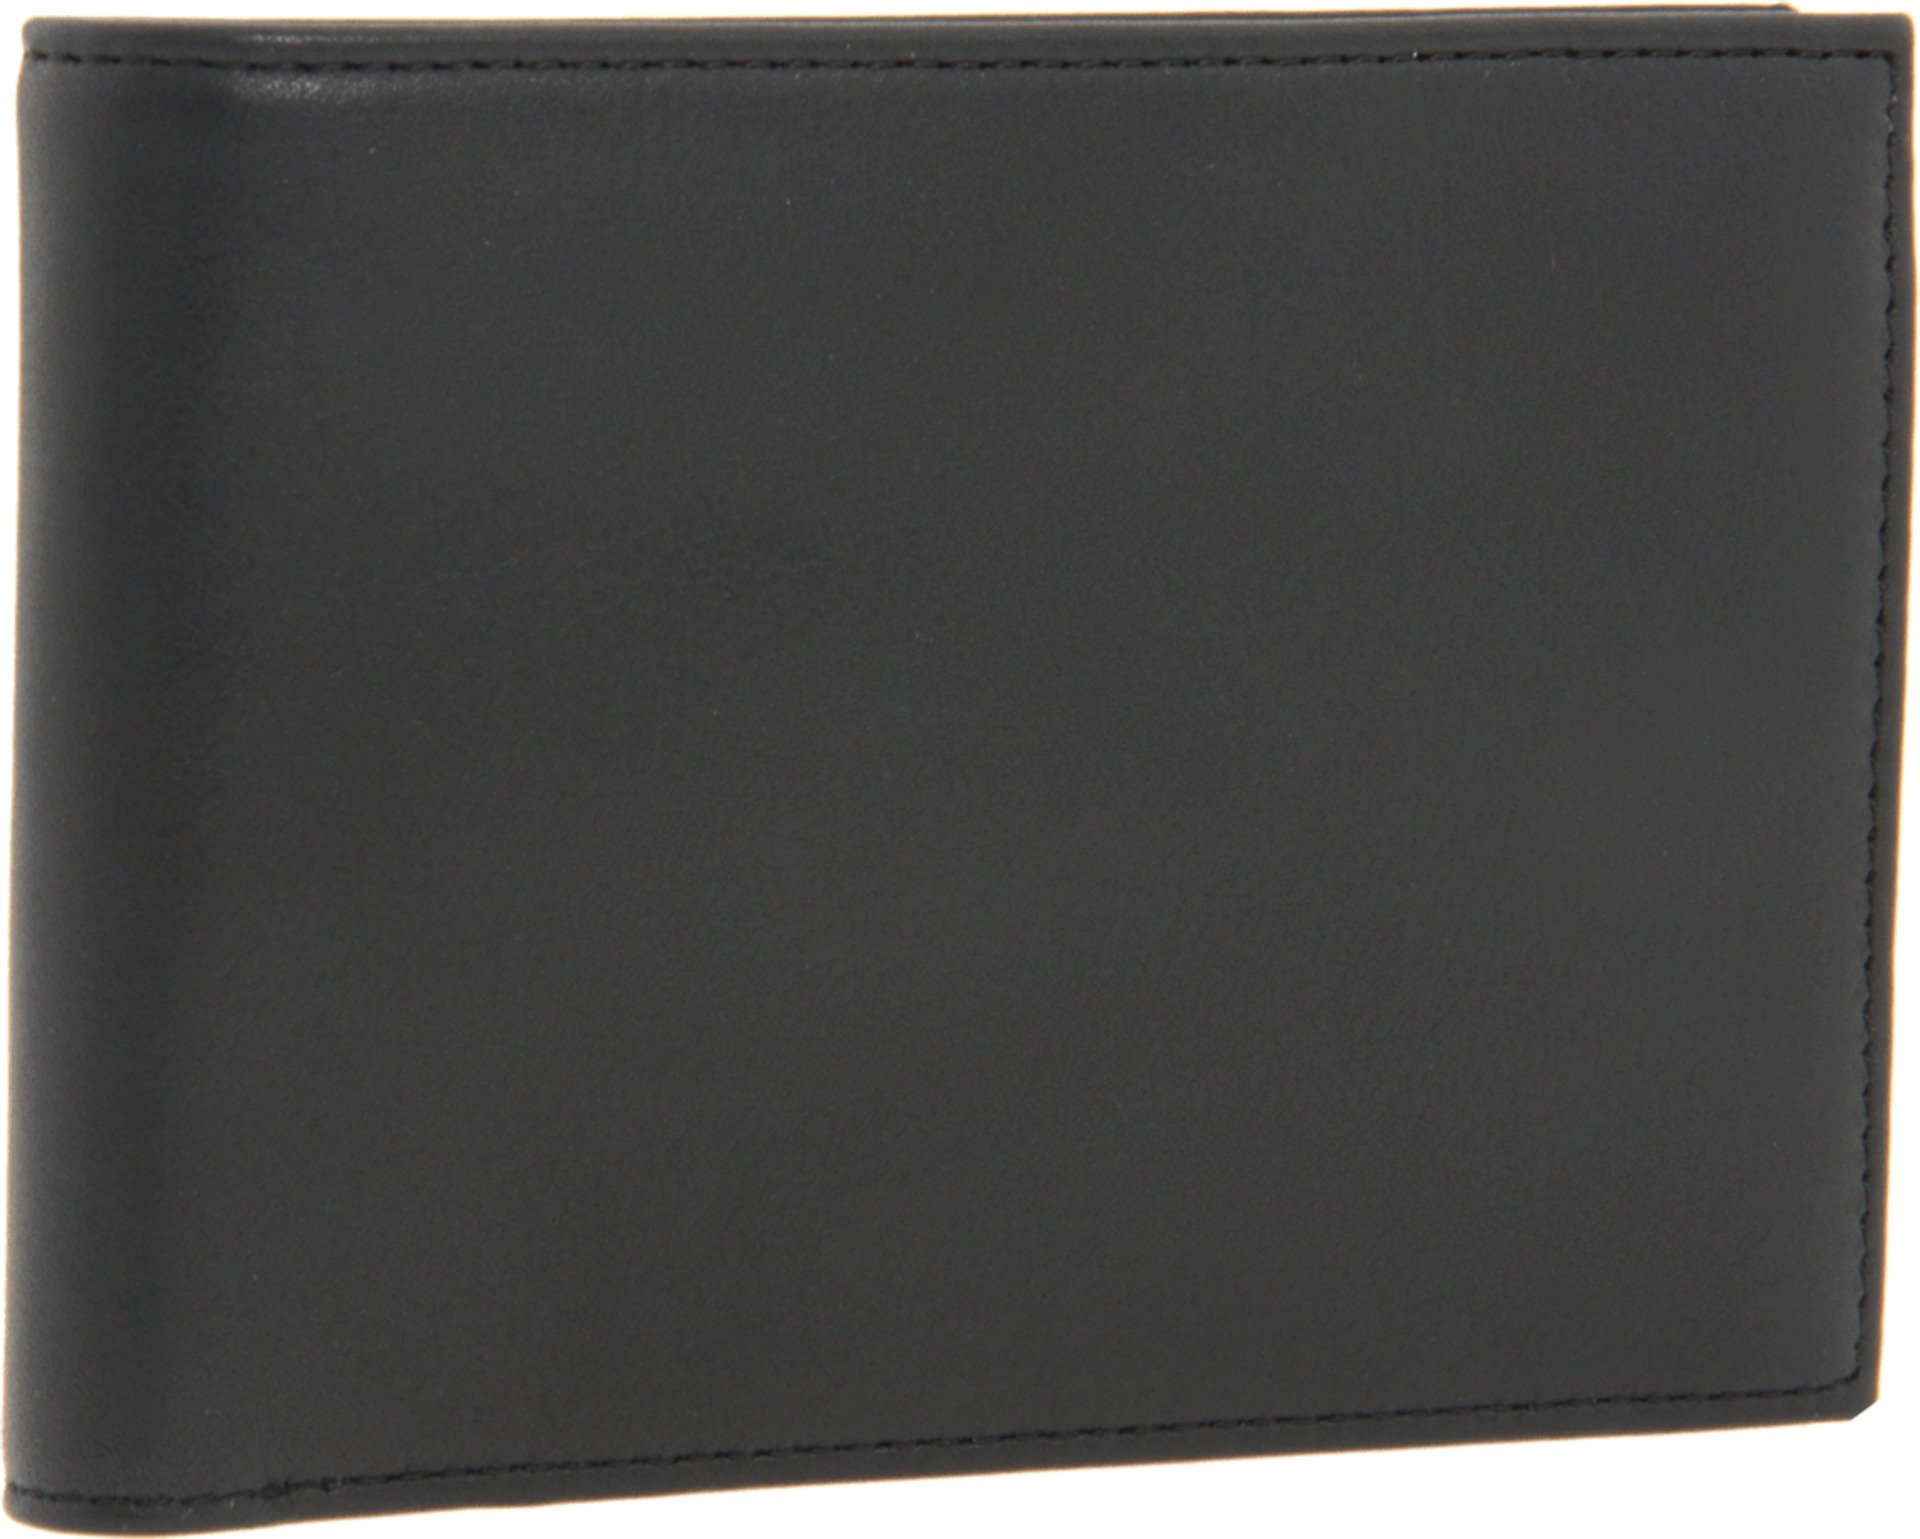 Bosca Nappa Vitello Collection - Credit Wallet w/ ID Passcase Wallet Black Leather